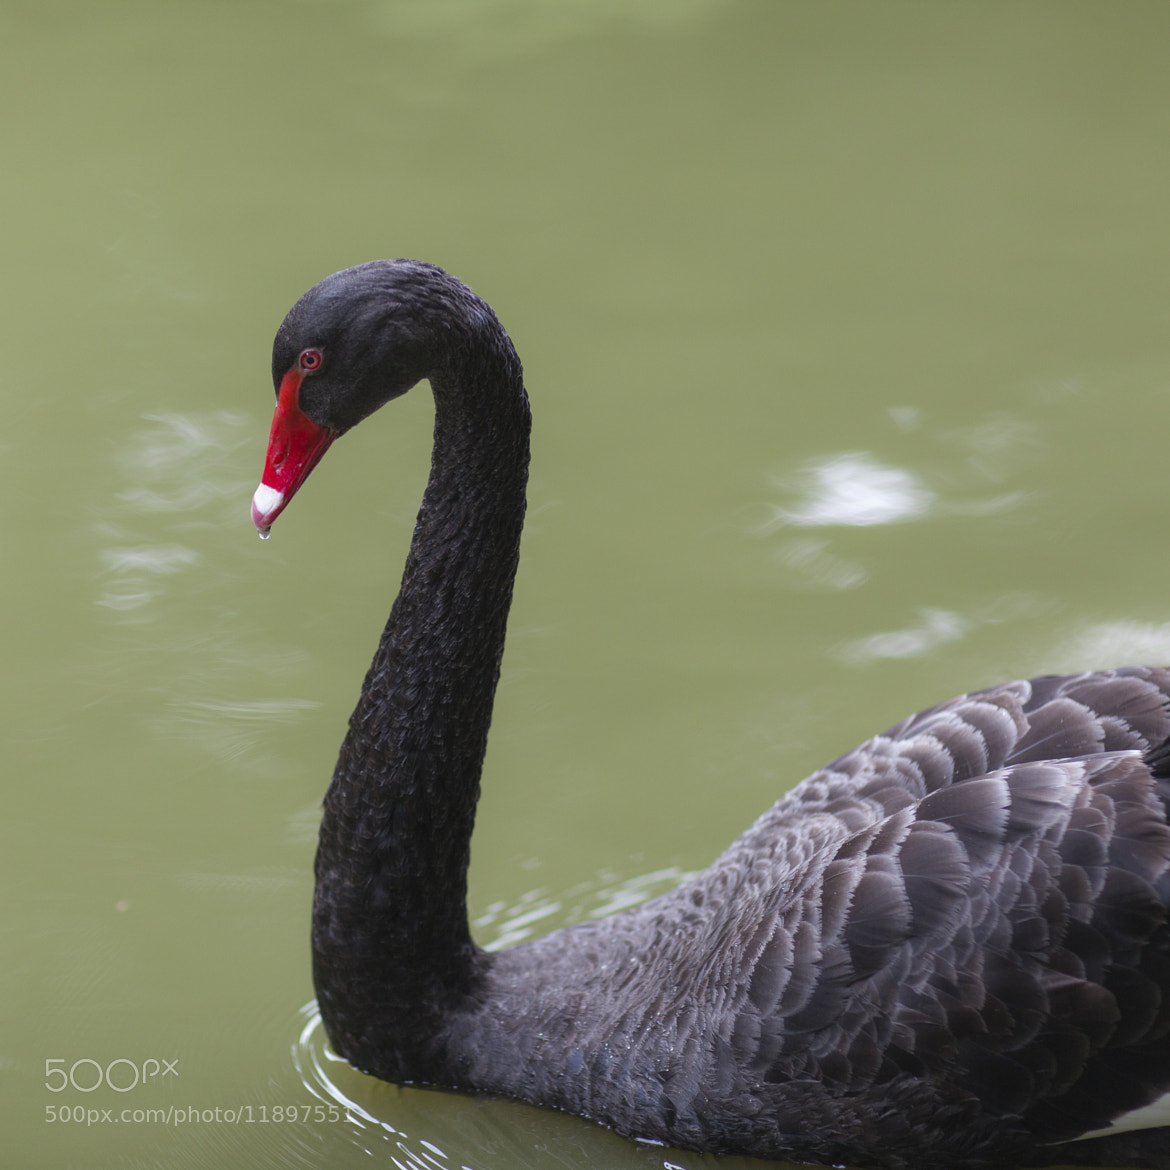 Photograph The Black Swan by Kevinn Nicol on 500px